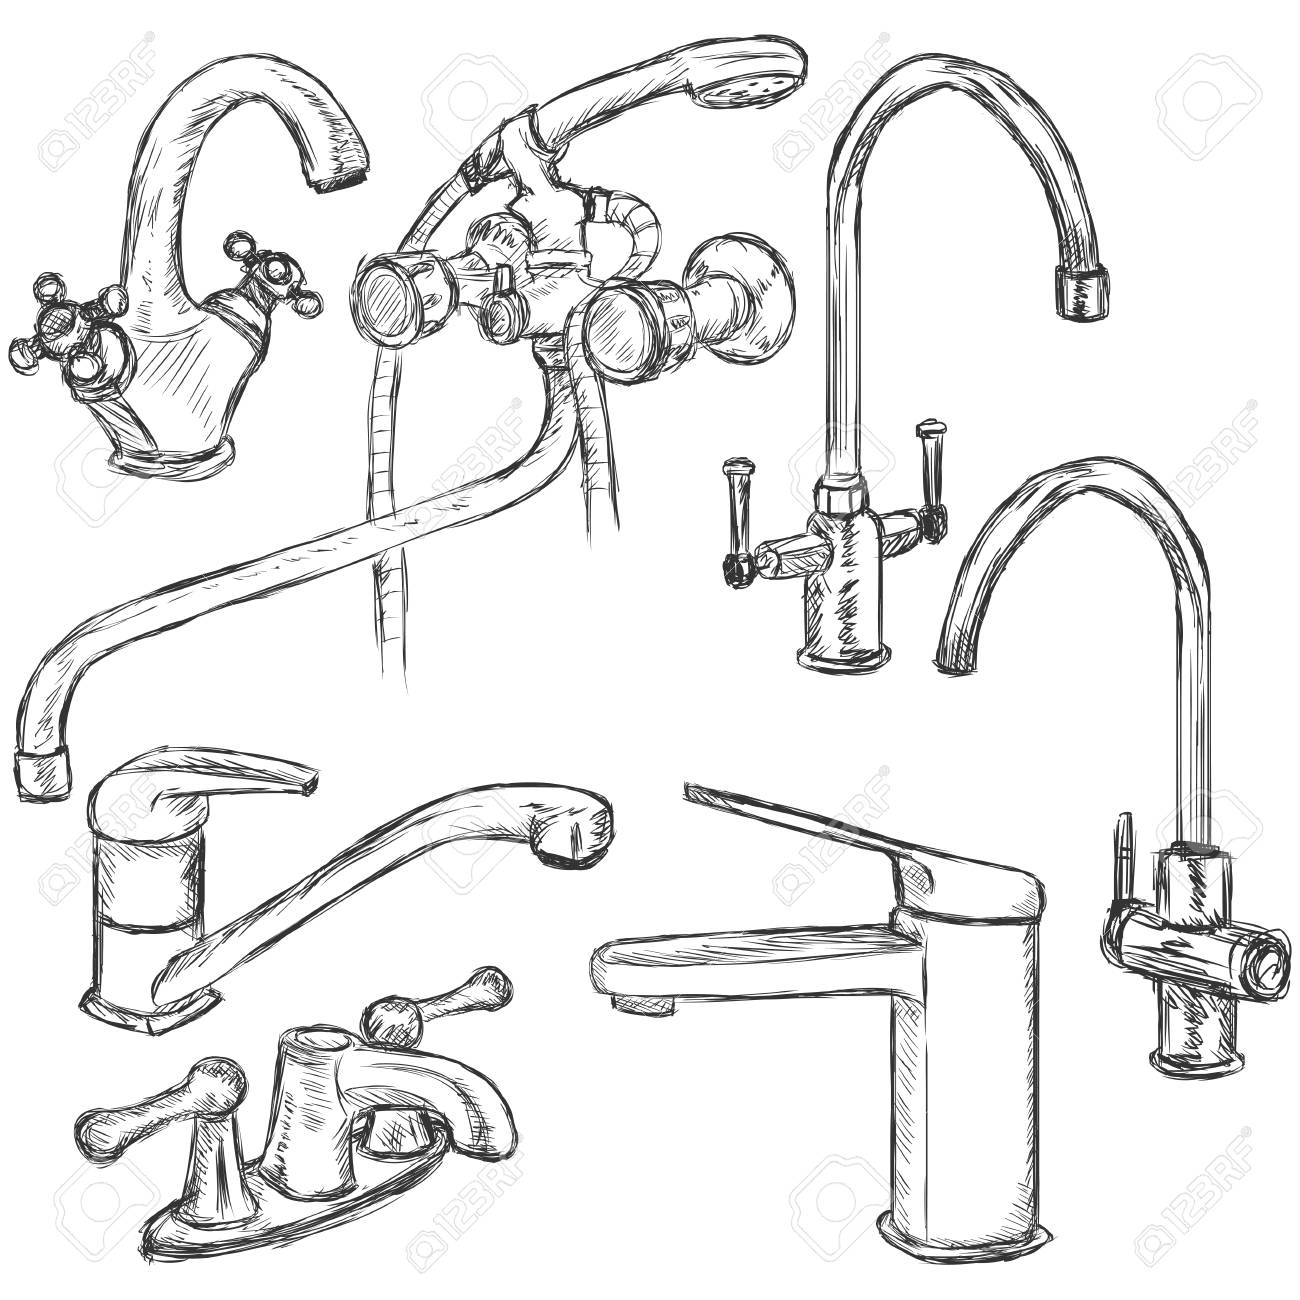 Vector Set Of Sketch Faucets. Types Of Faucets. Royalty Free ...